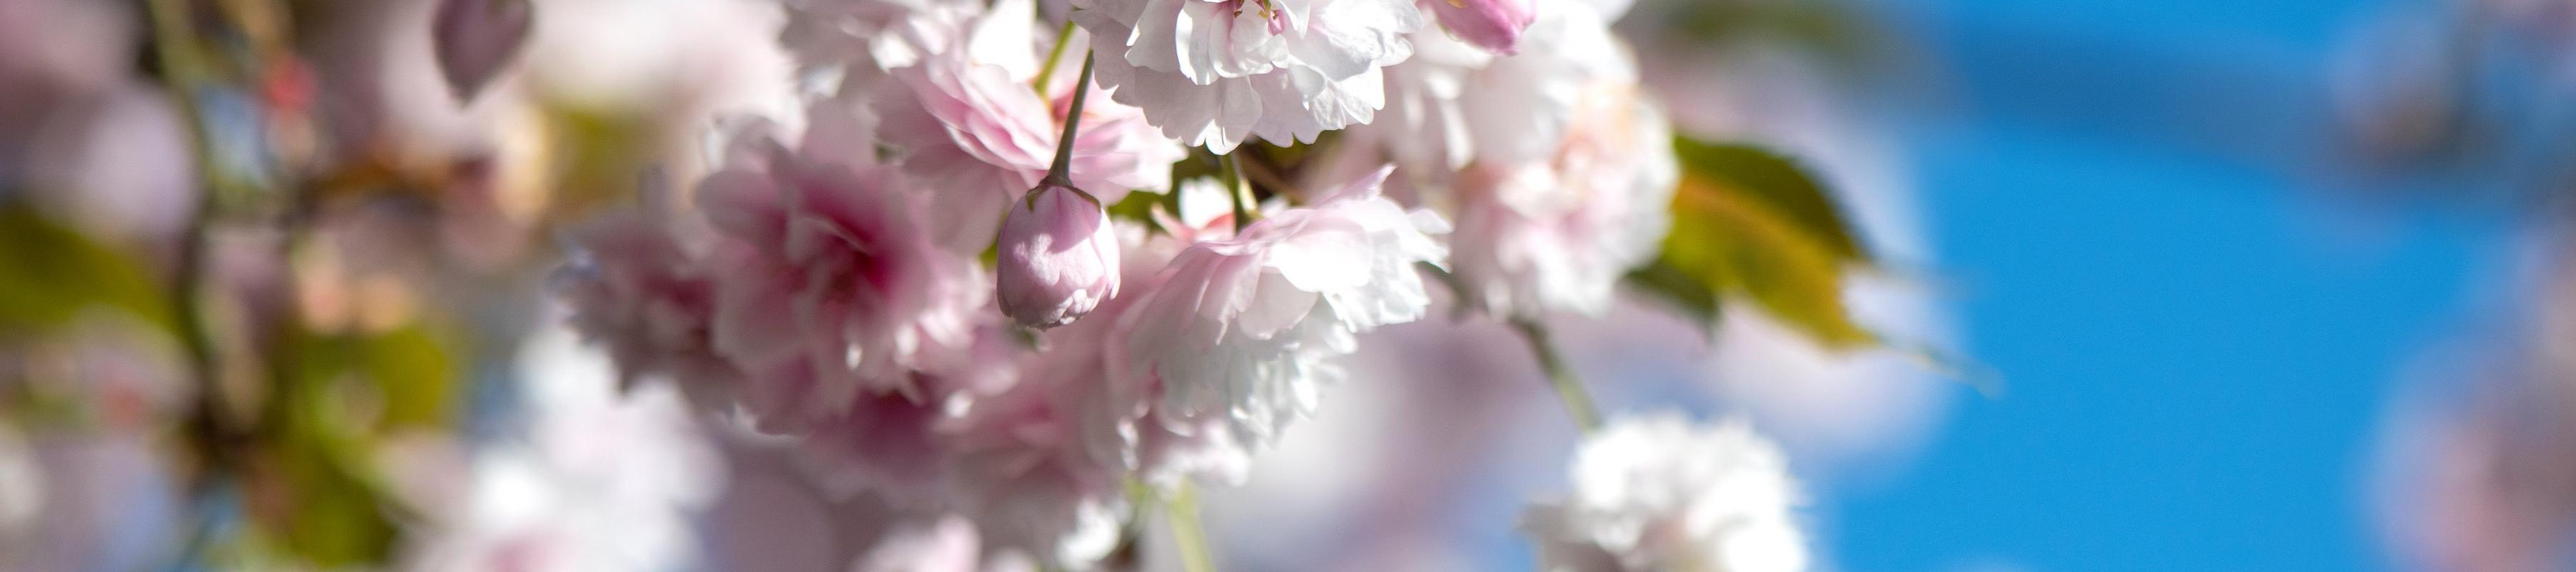 Cherry blossom on branches in spring